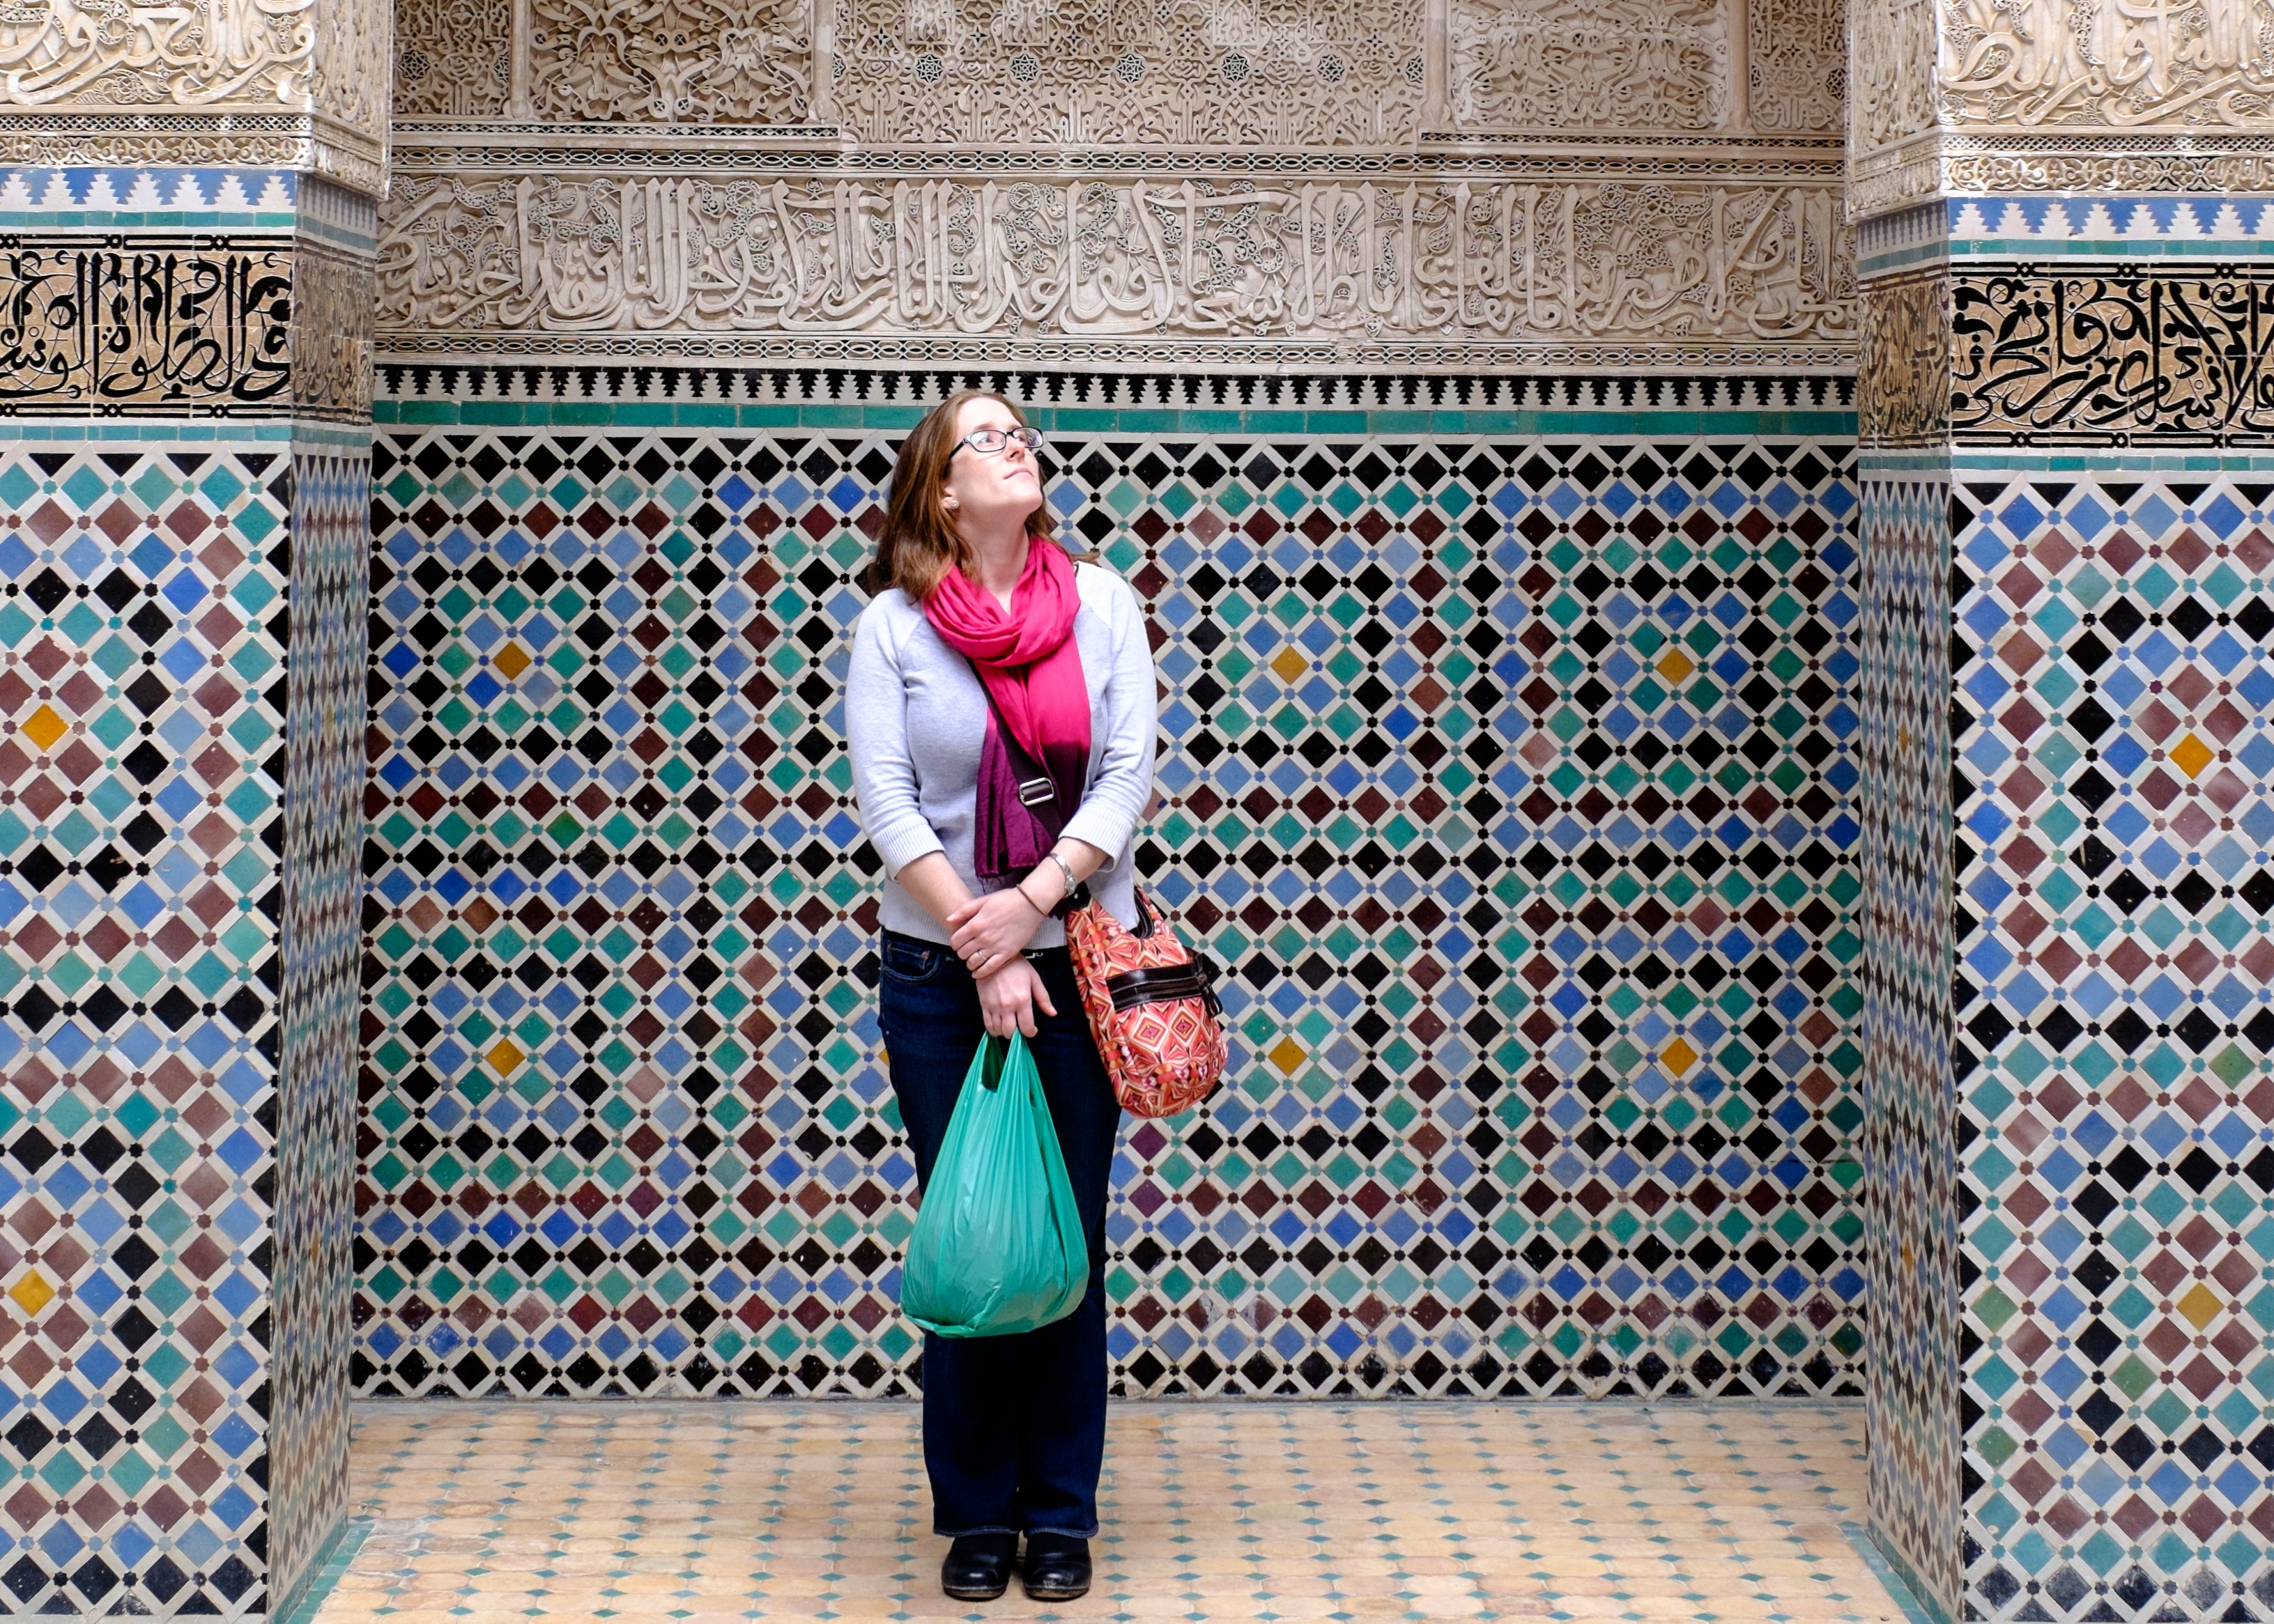 Morocco photos-7